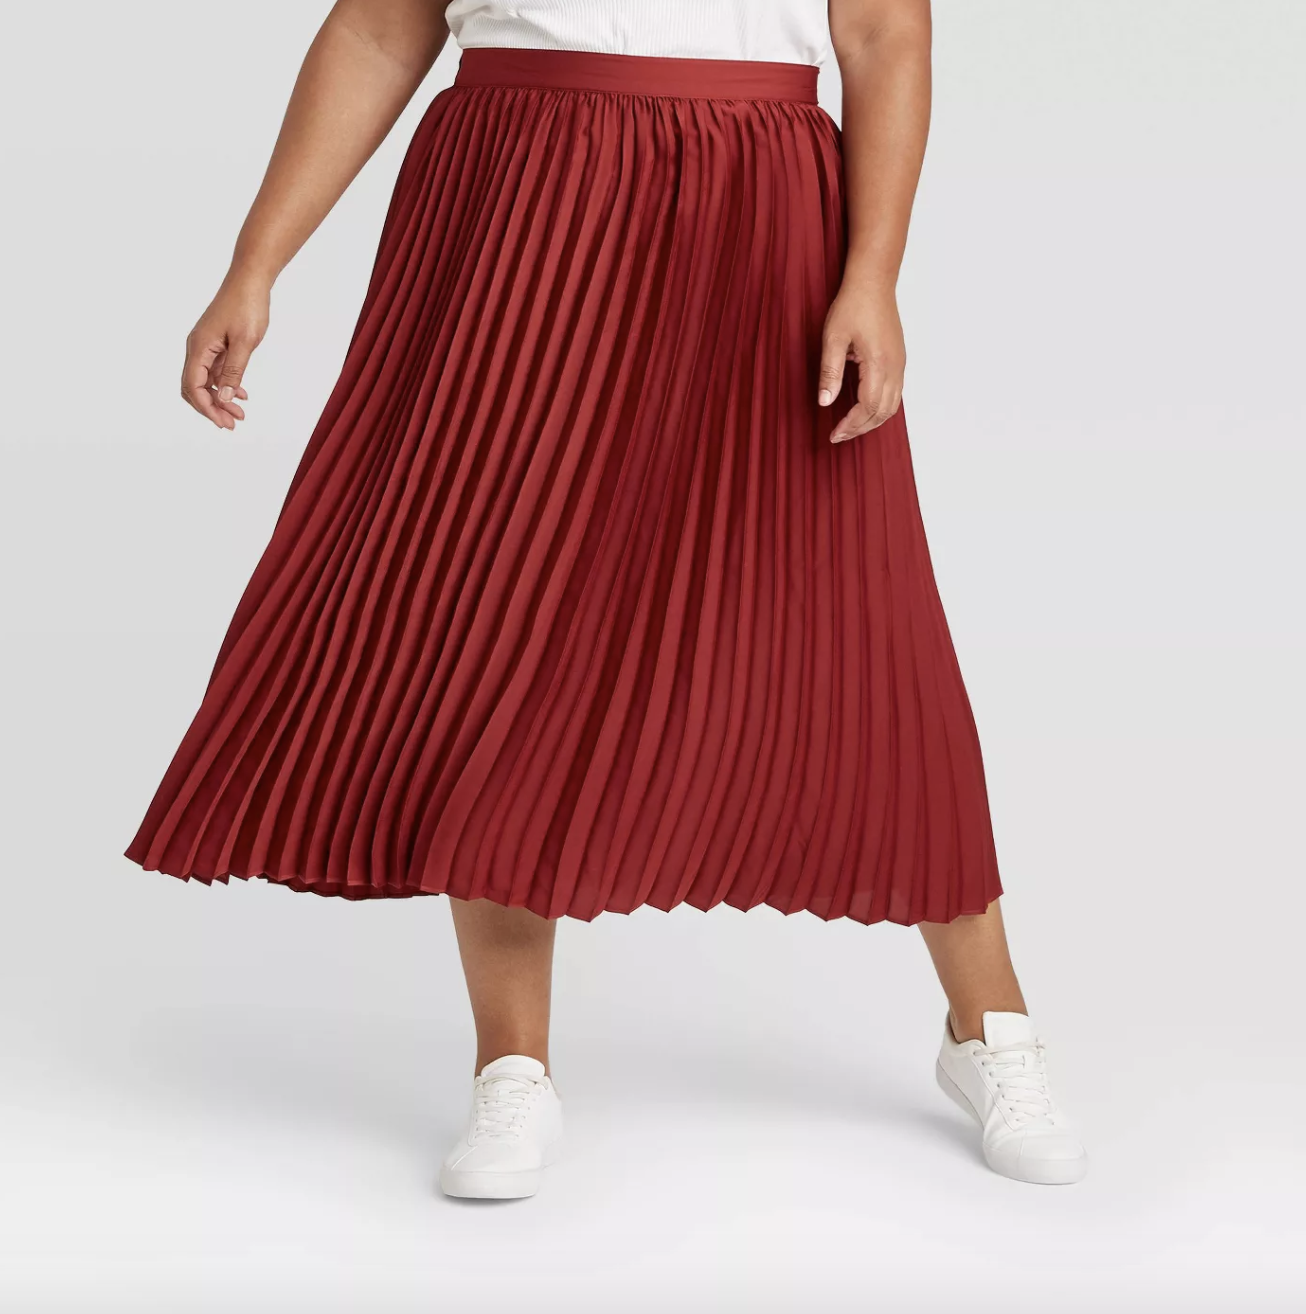 model wearing red pleated midi skirt